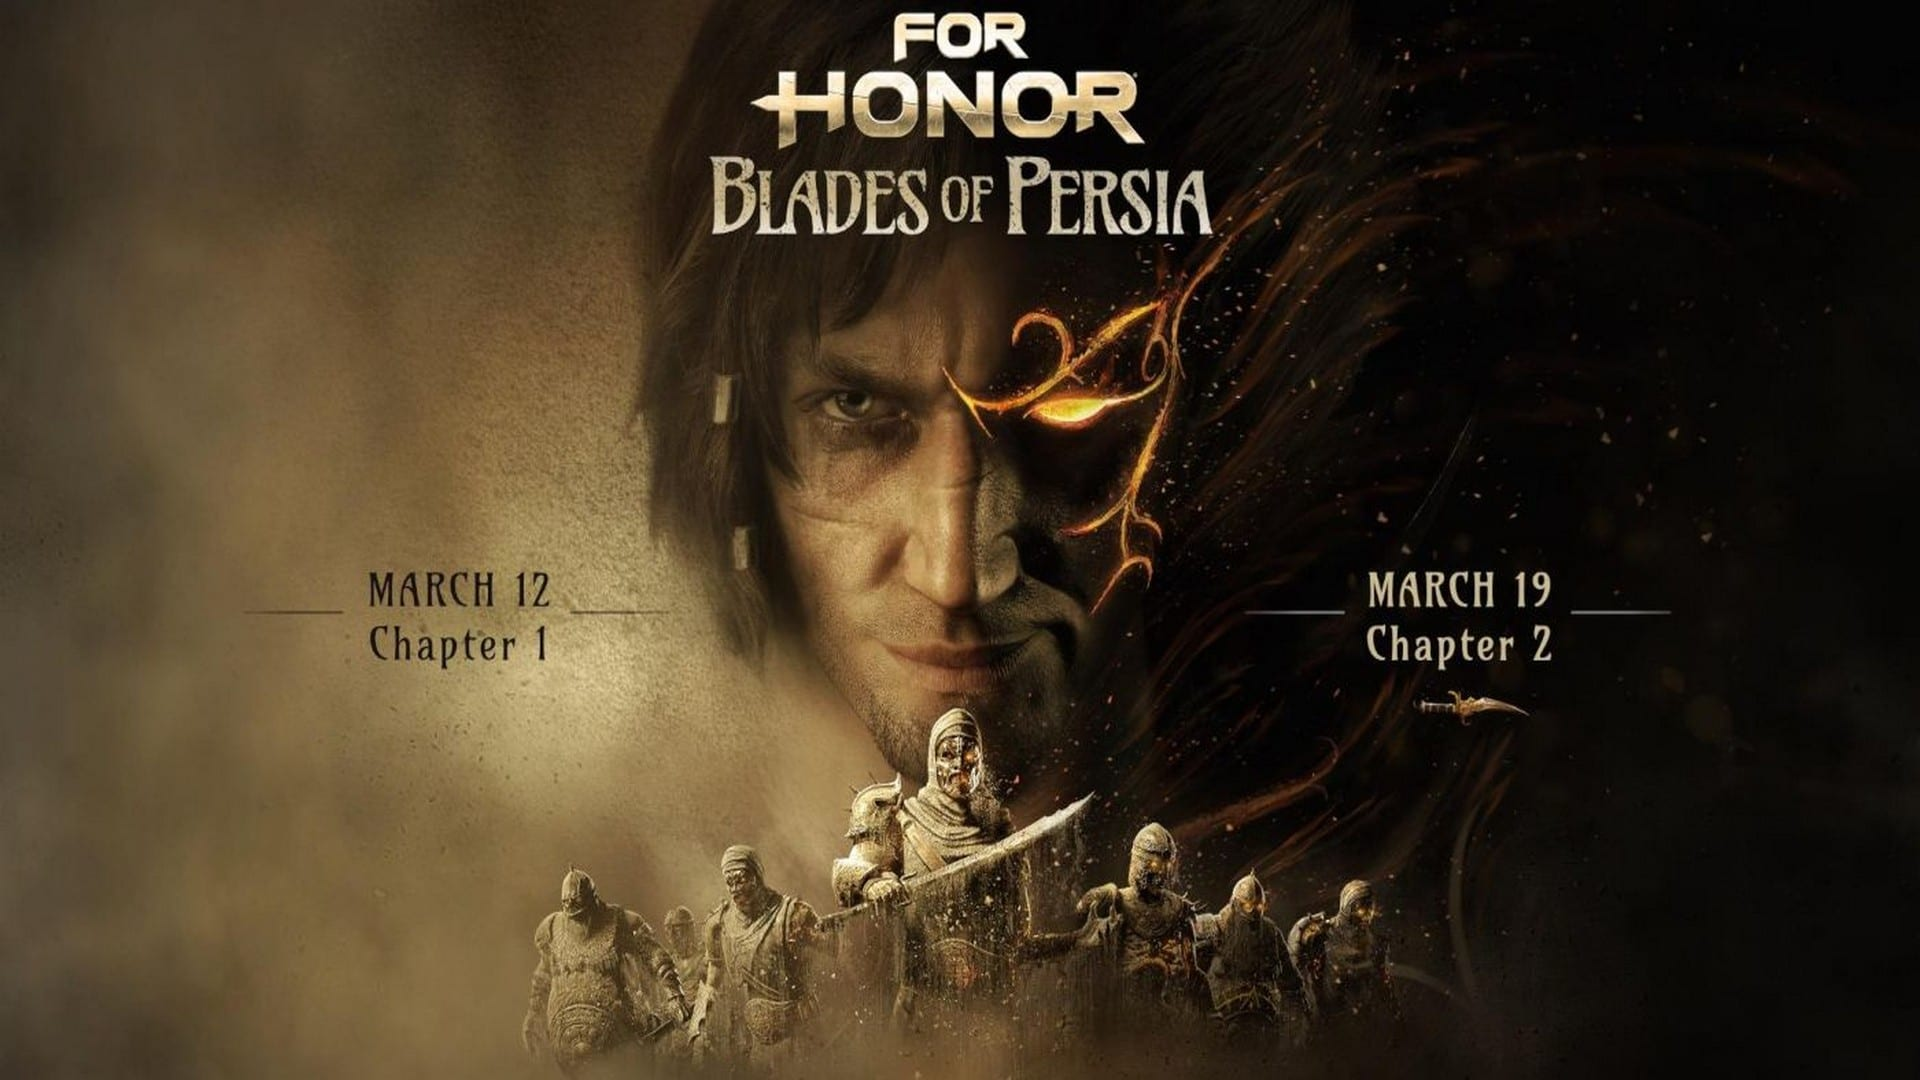 The Prince Of Persia Invades For Honor For Themed In-Game Event, Playable Now Until April 2